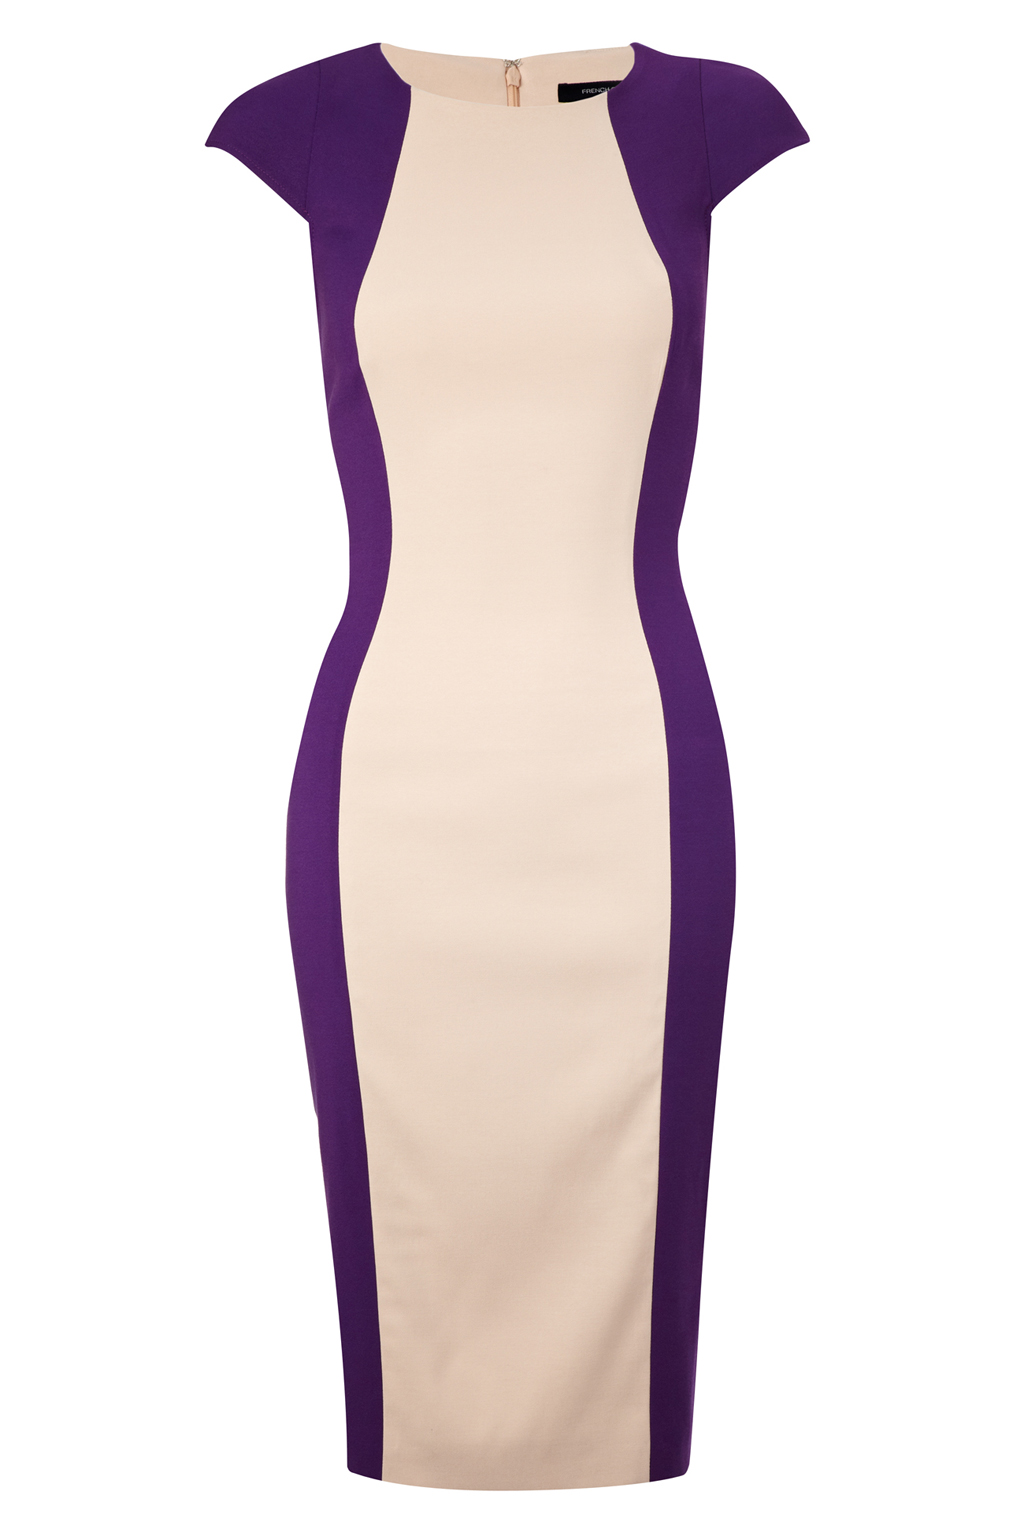 New-French-Connection-Reign-Block-Cap-Sleeve-Dress